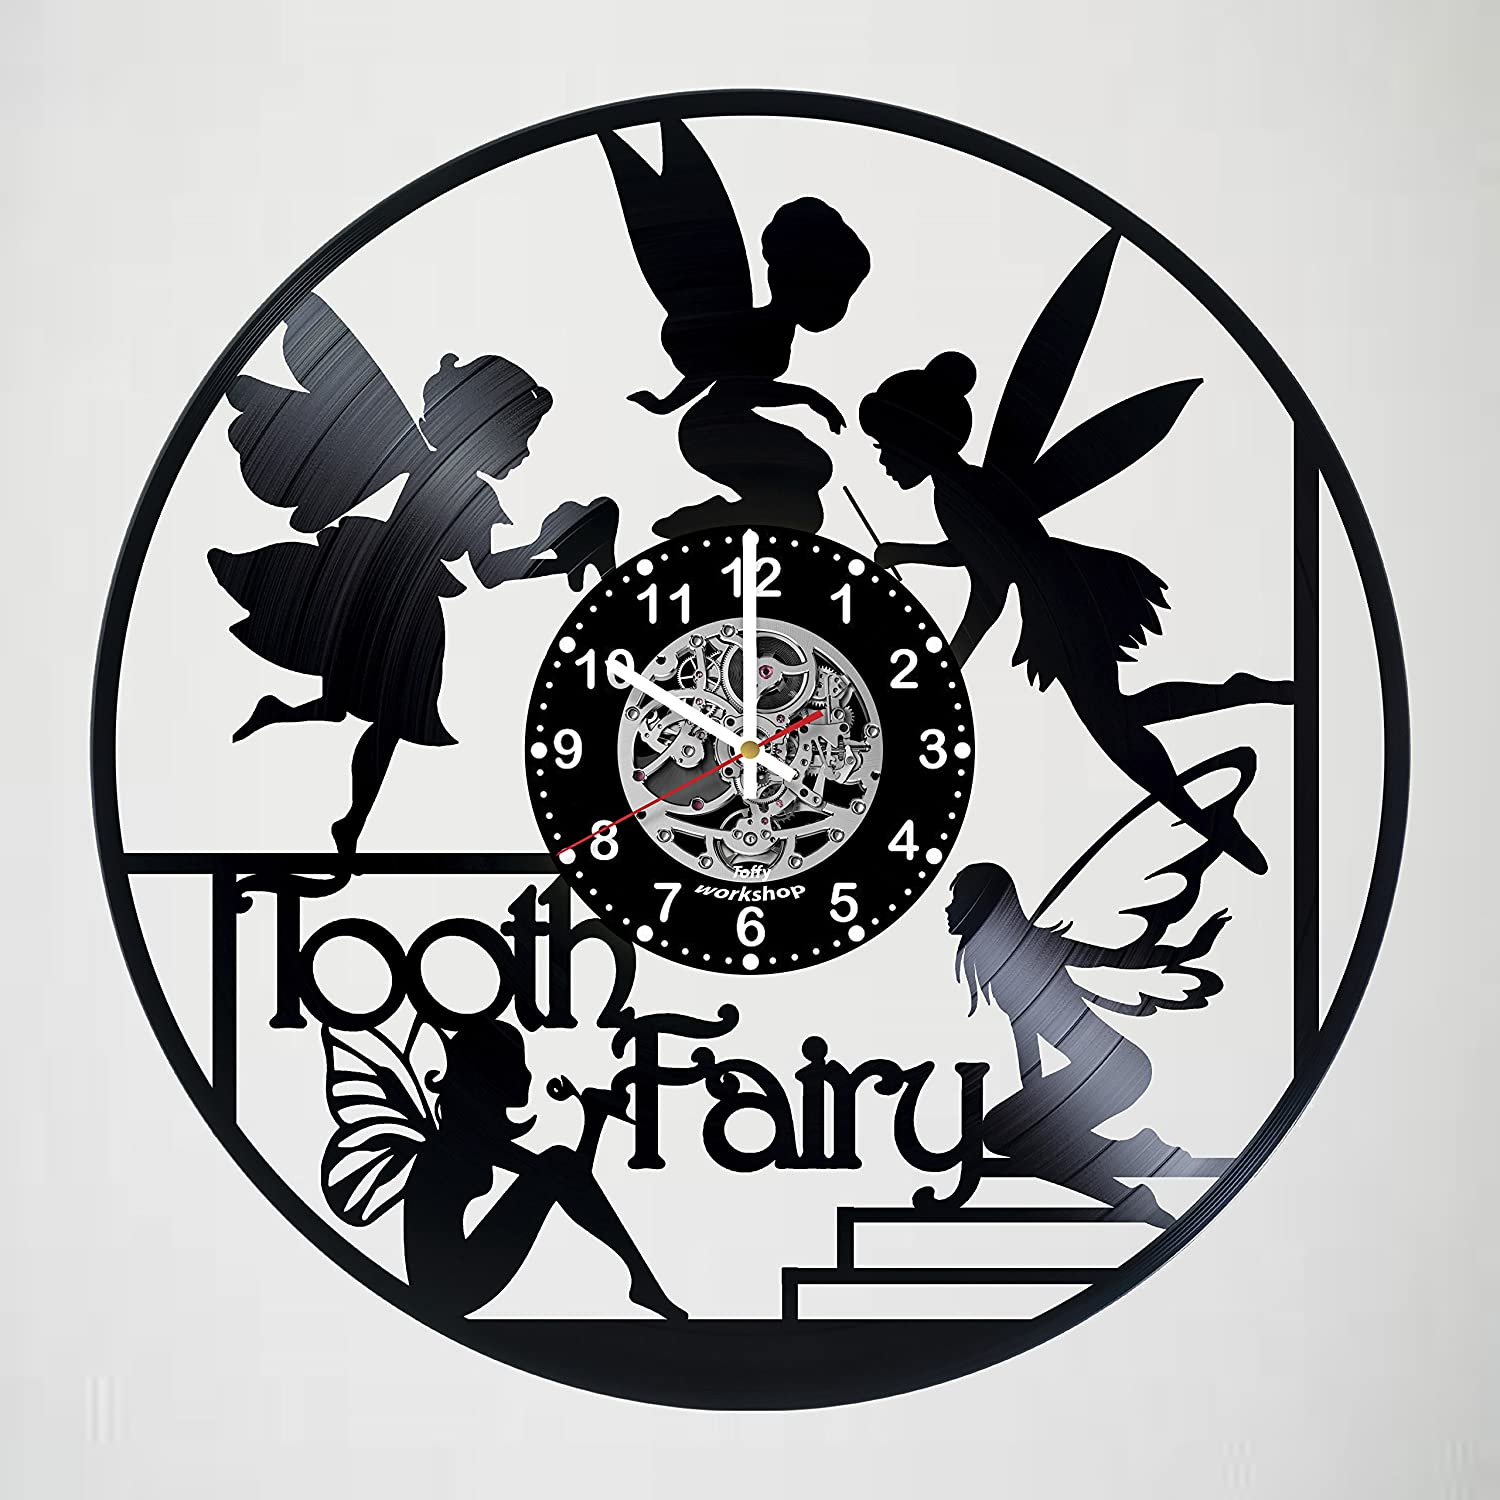 Cute Tooth Fairy Decor Vinyl Record Wall Clock - Exciting kidsroom decor - perfect gift idea for children, girls, adults, men and women - Unique Art Design!